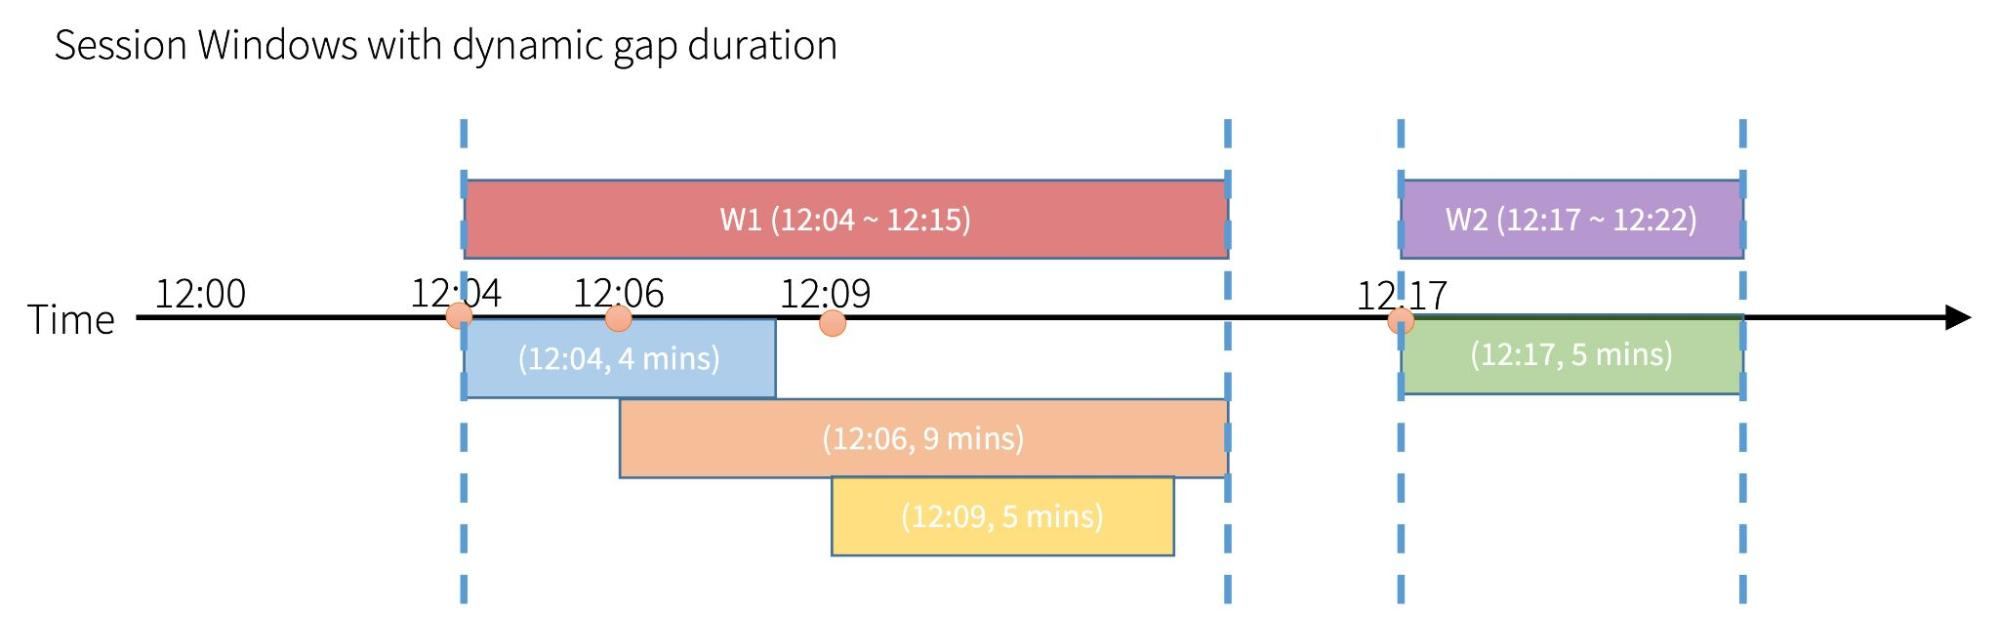 Visualized examples of session windows with dynamic gap duration in Apache Spark 3.2.